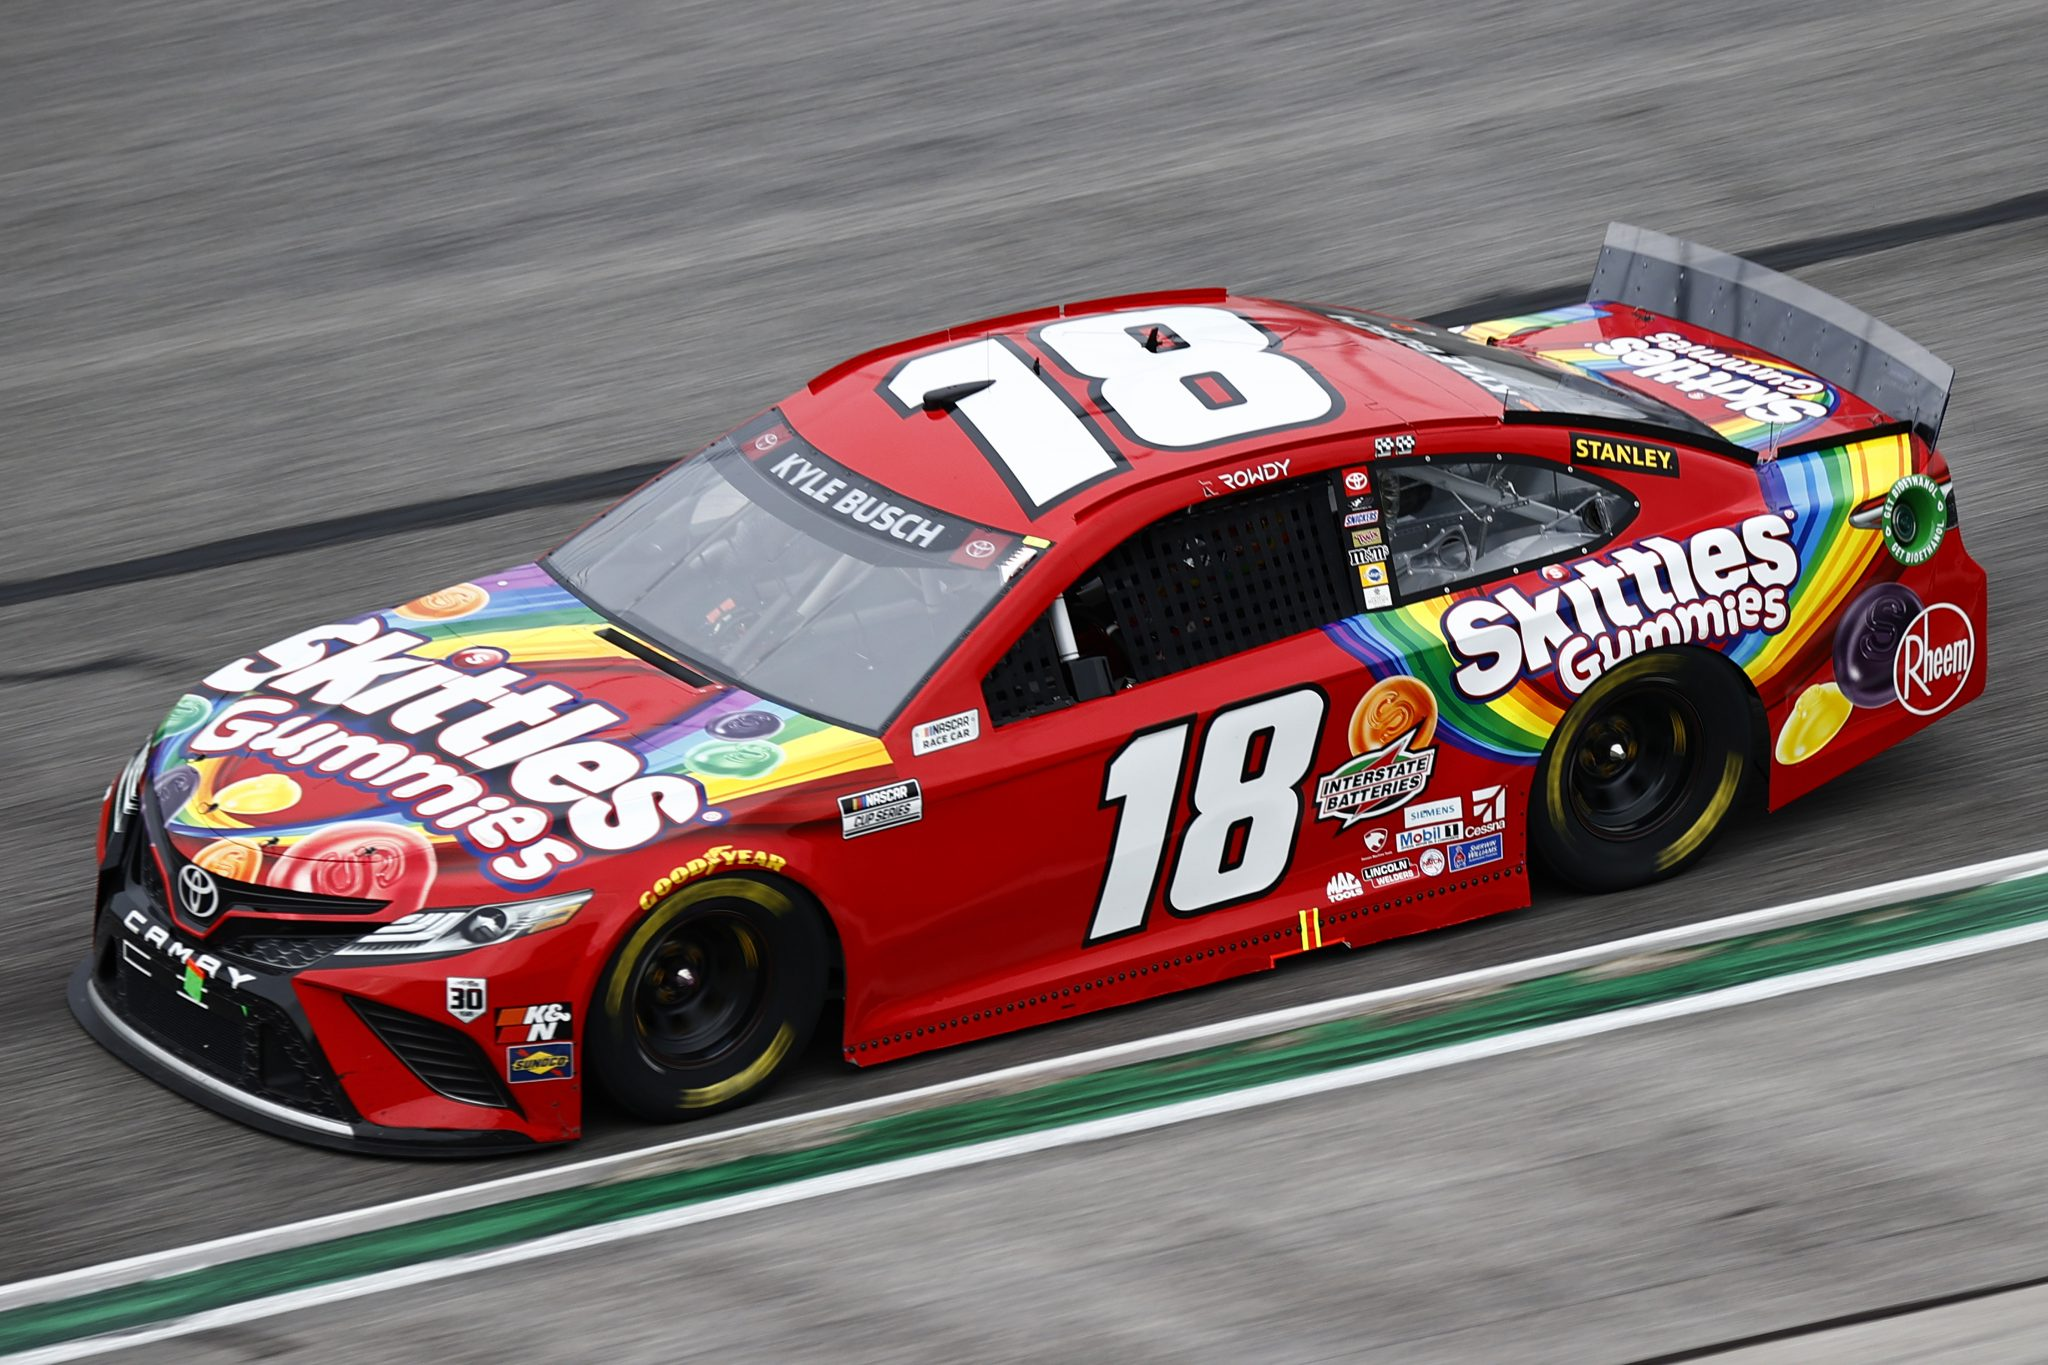 HAMPTON, GEORGIA - JULY 11: Kyle Busch, driver of the #18 Skittles Gummies Toyota, drives during the NASCAR Cup Series Quaker State 400 presented by Walmart at Atlanta Motor Speedway on July 11, 2021 in Hampton, Georgia. (Photo by Jared C. Tilton/Getty Images) | Getty Images